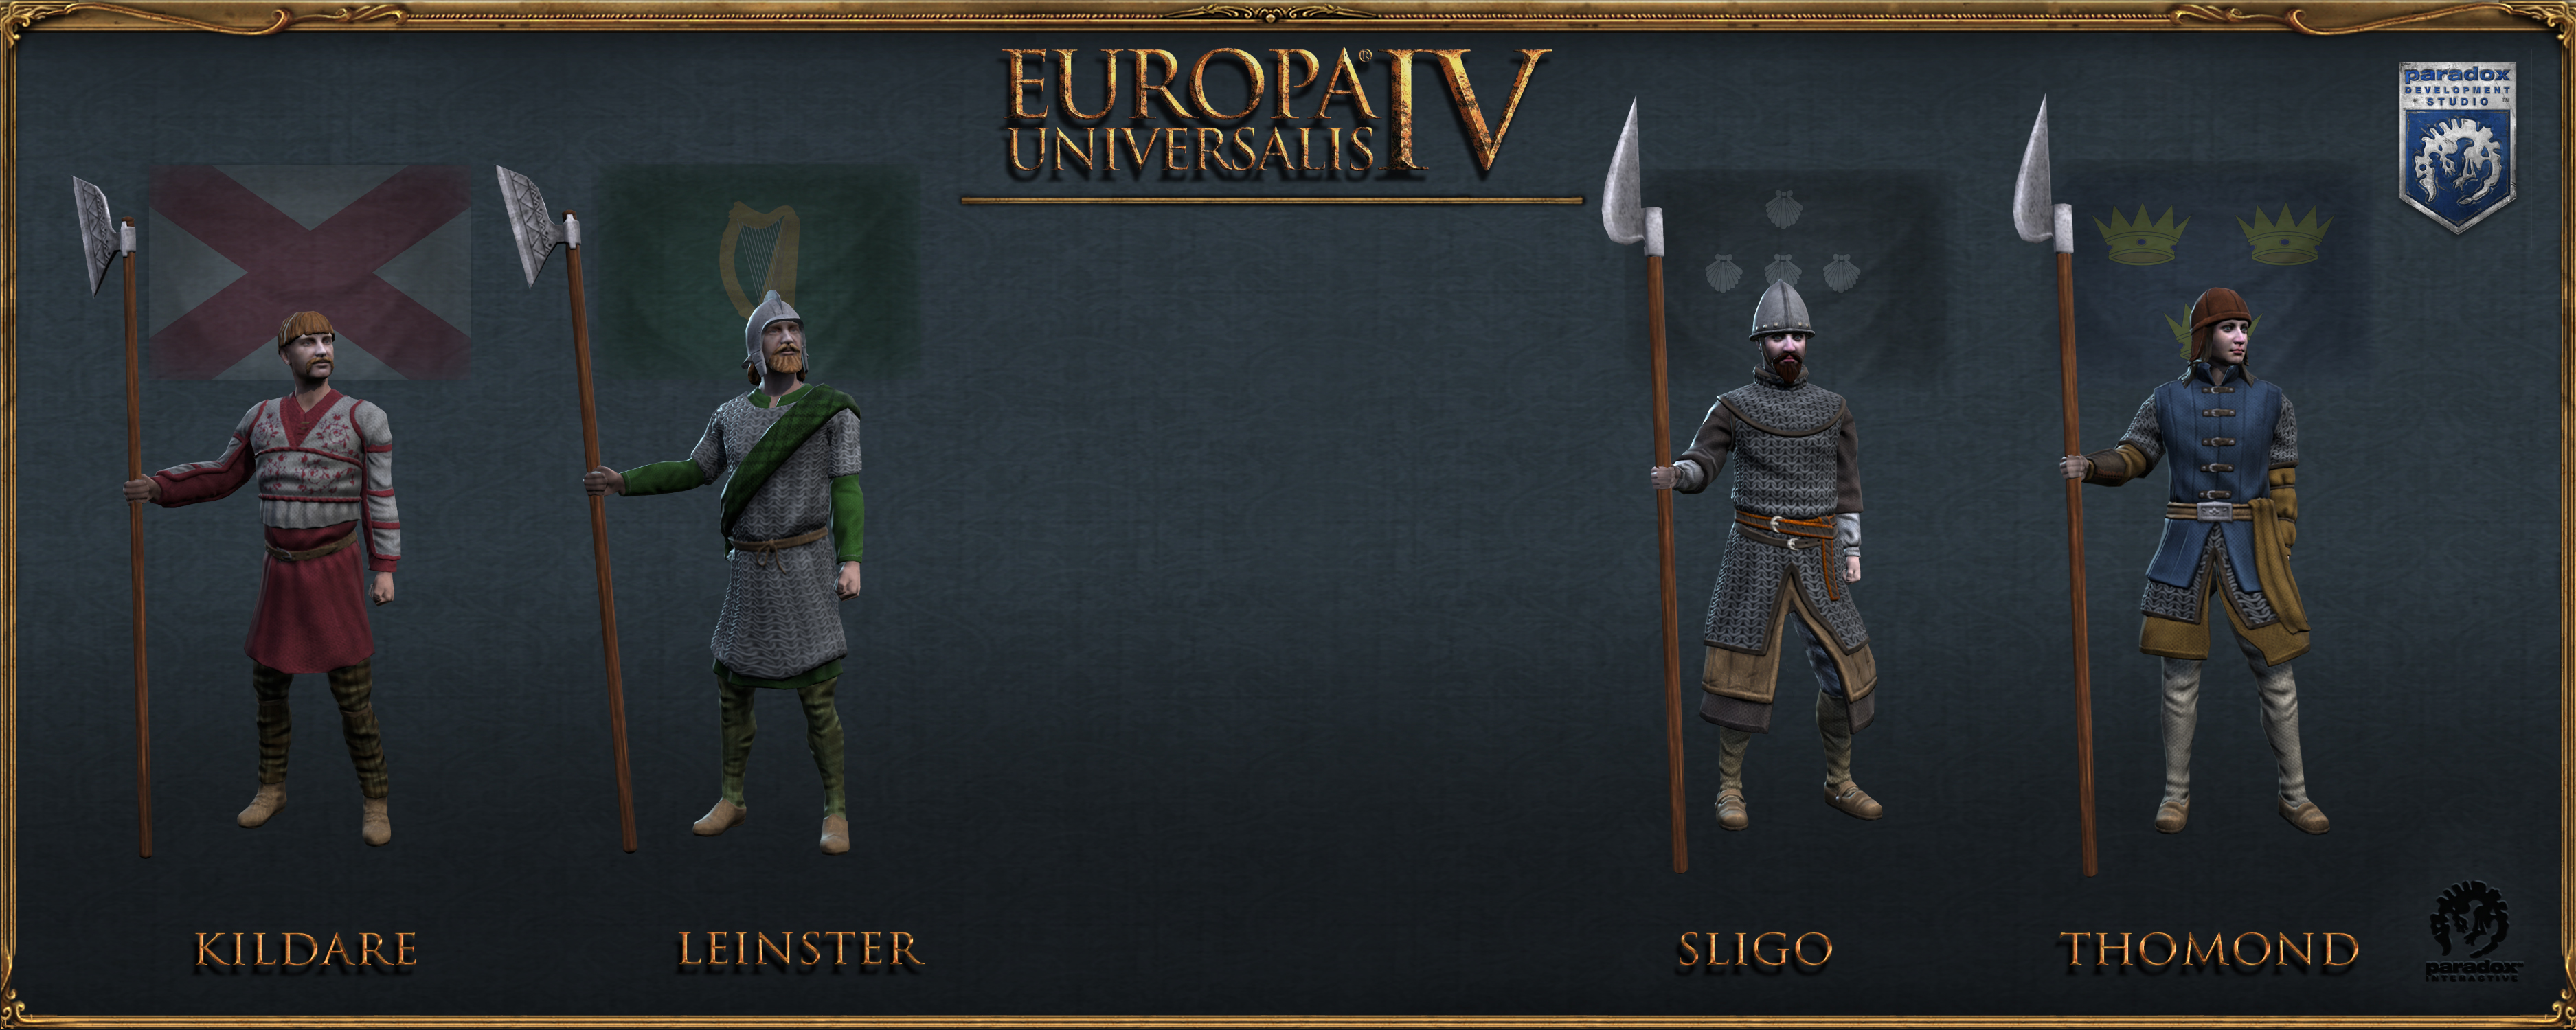 Europa Universalis IV: DLC Render Pictures Archive | Paradox